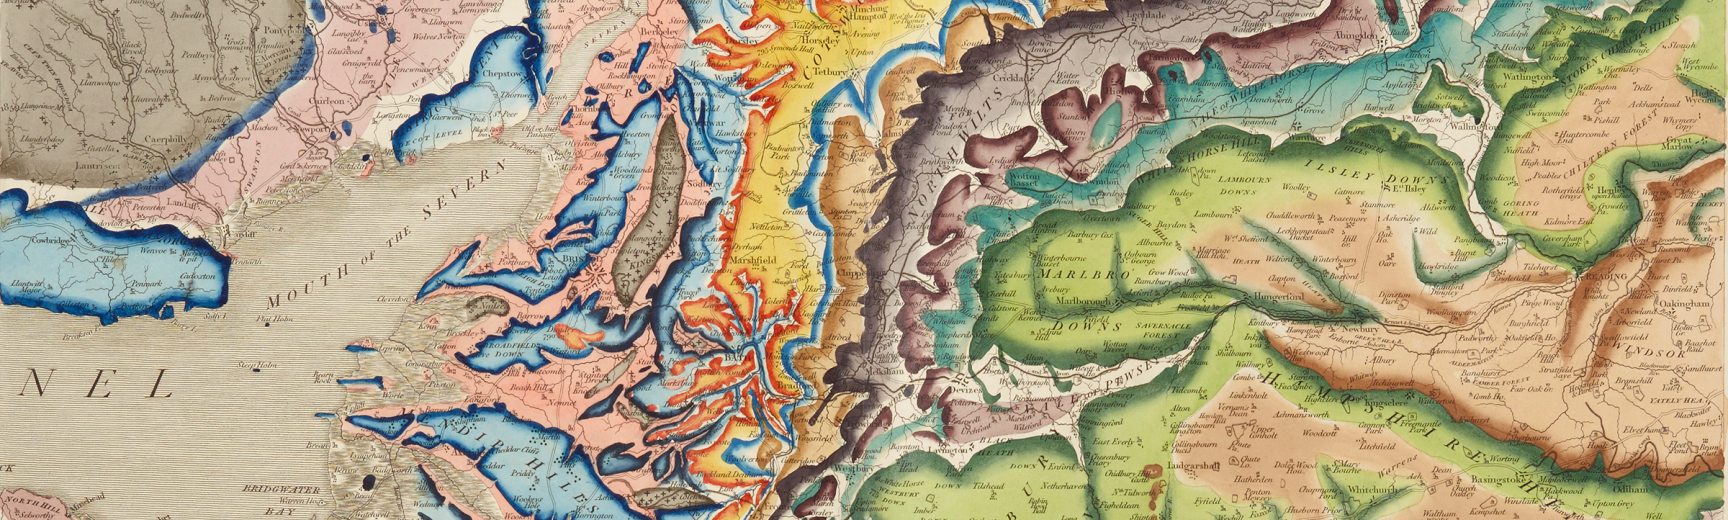 smith map